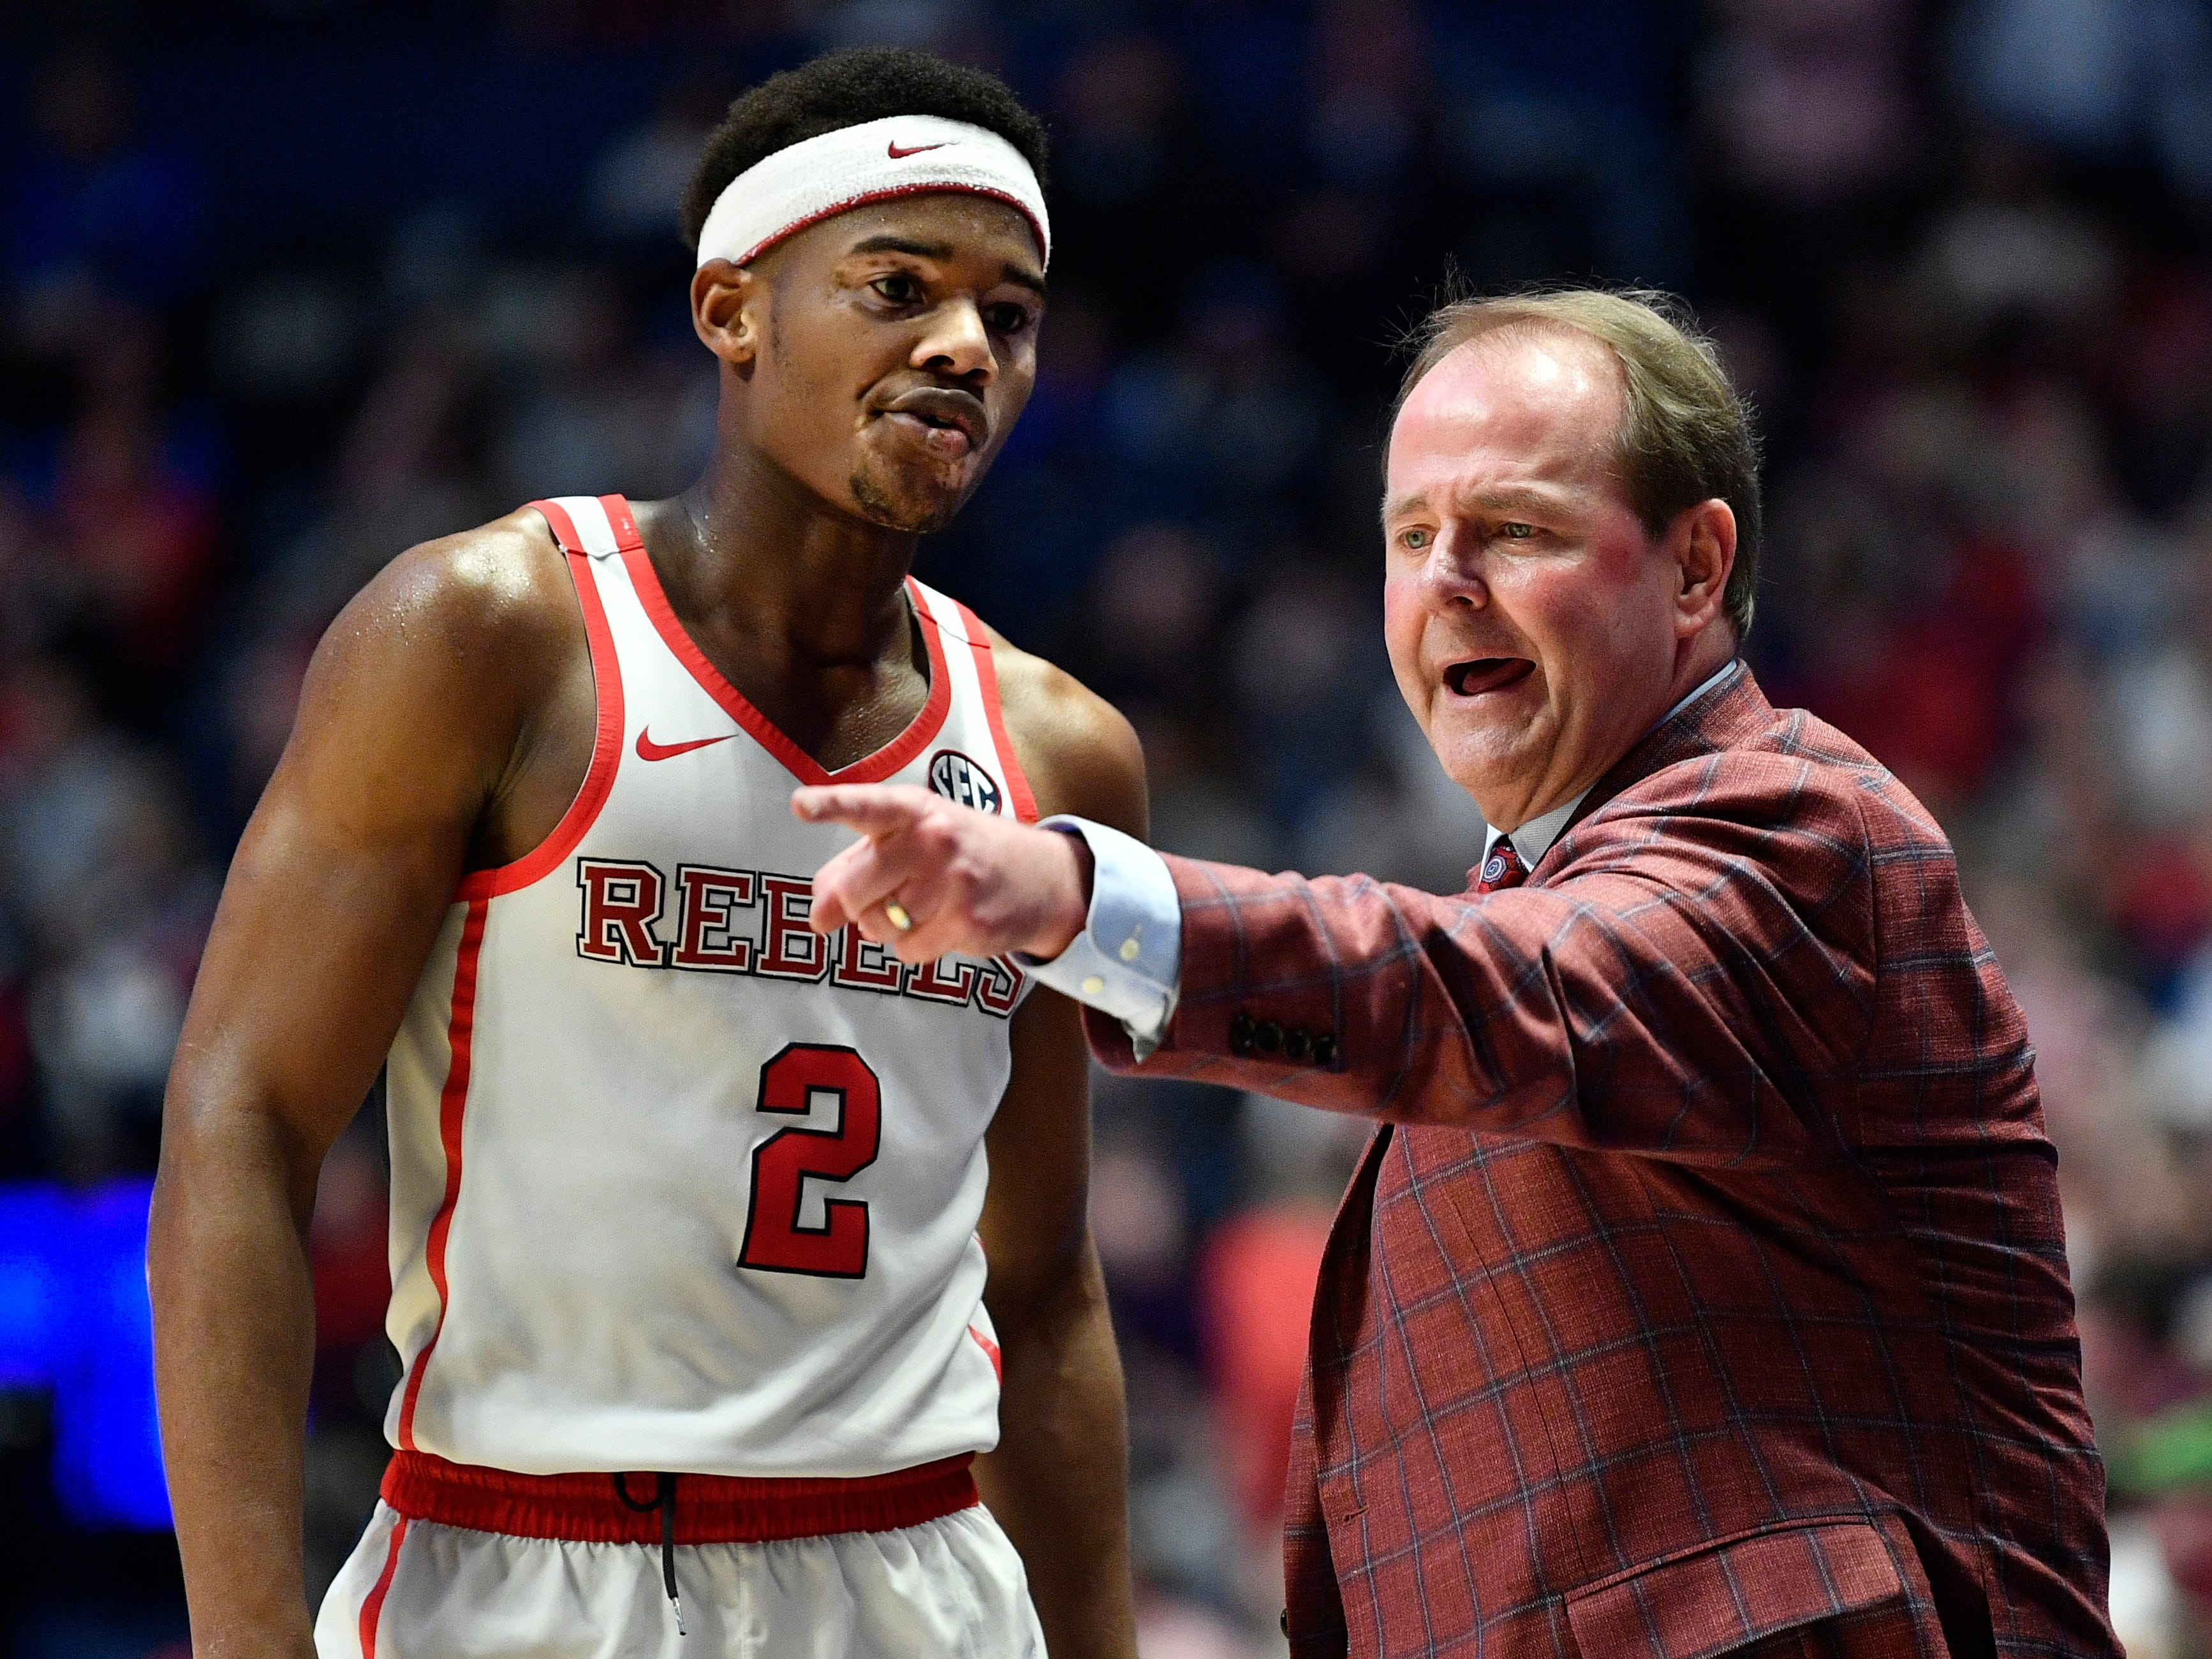 Ole Miss head coach Kermit Davis talks to guard Devontae Shuler (2) during the second half of the SEC Men's Basketball Tournament game at Bridgestone Arena in Nashville, Tenn., Thursday, March 14, 2019.